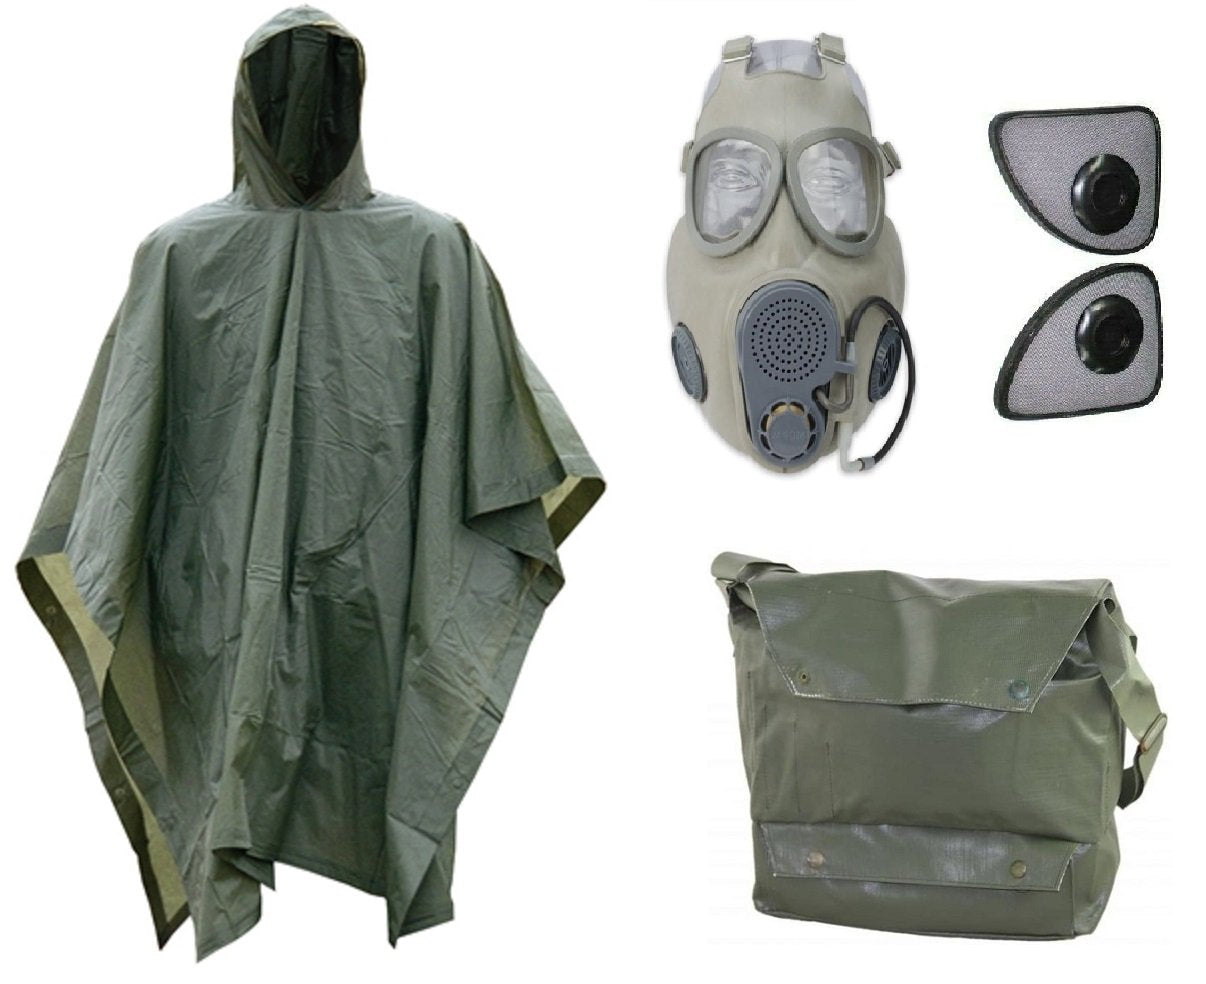 Halloween Costume Kit: Be Ready Zombie Apocalypse with Military Gas Mask M10M, Vinyl Gas Mask Bag, and OD Green Poncho Cape.